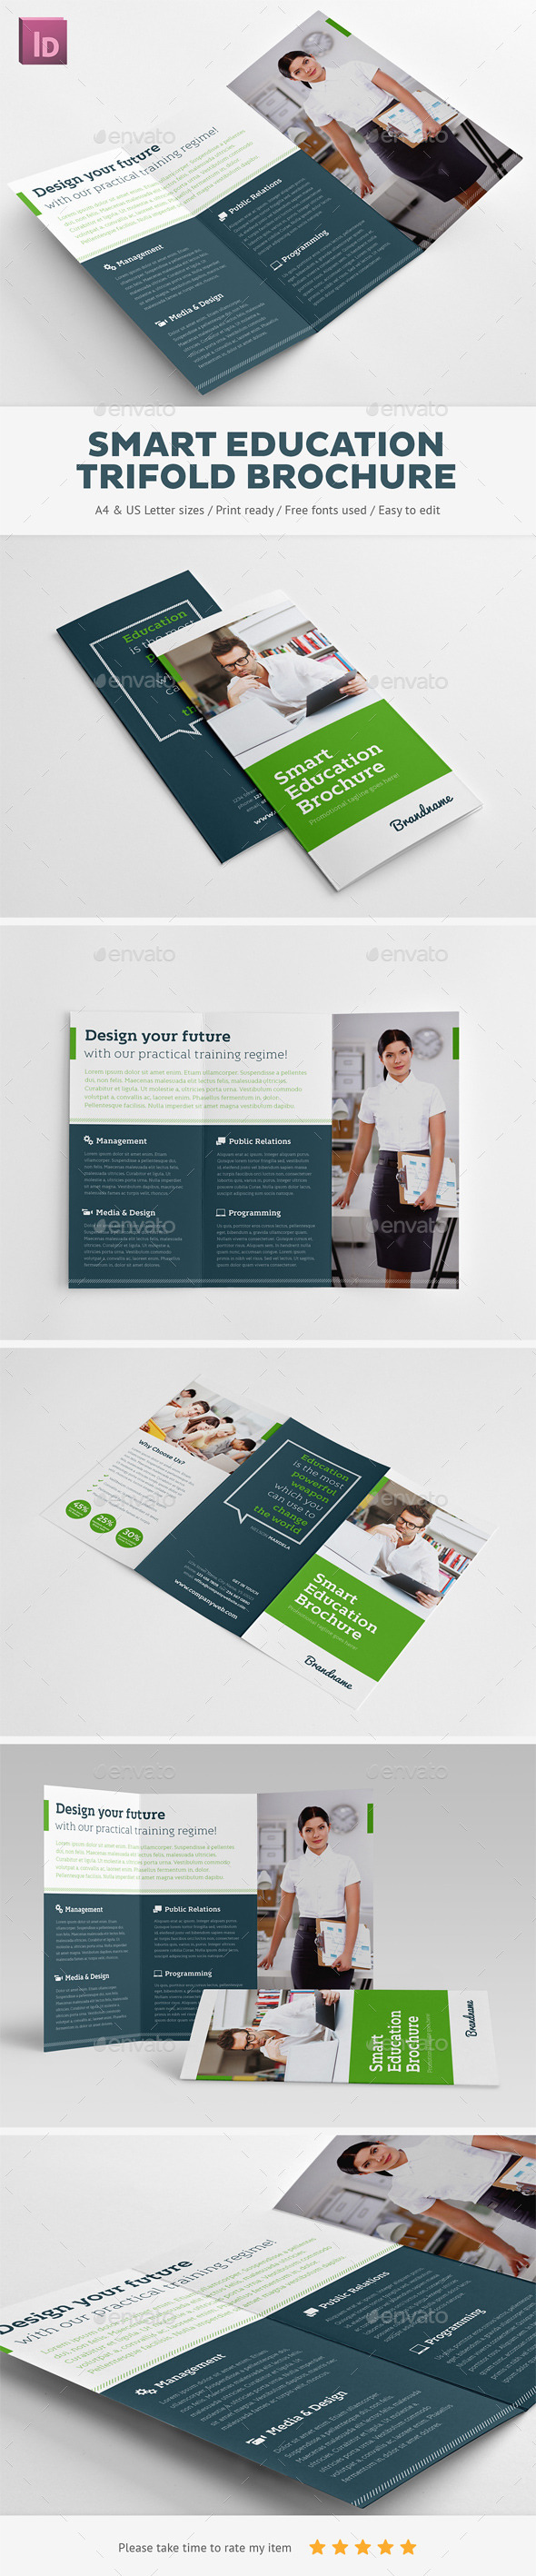 GraphicRiver Smart Education Trifold Brochure 10534696